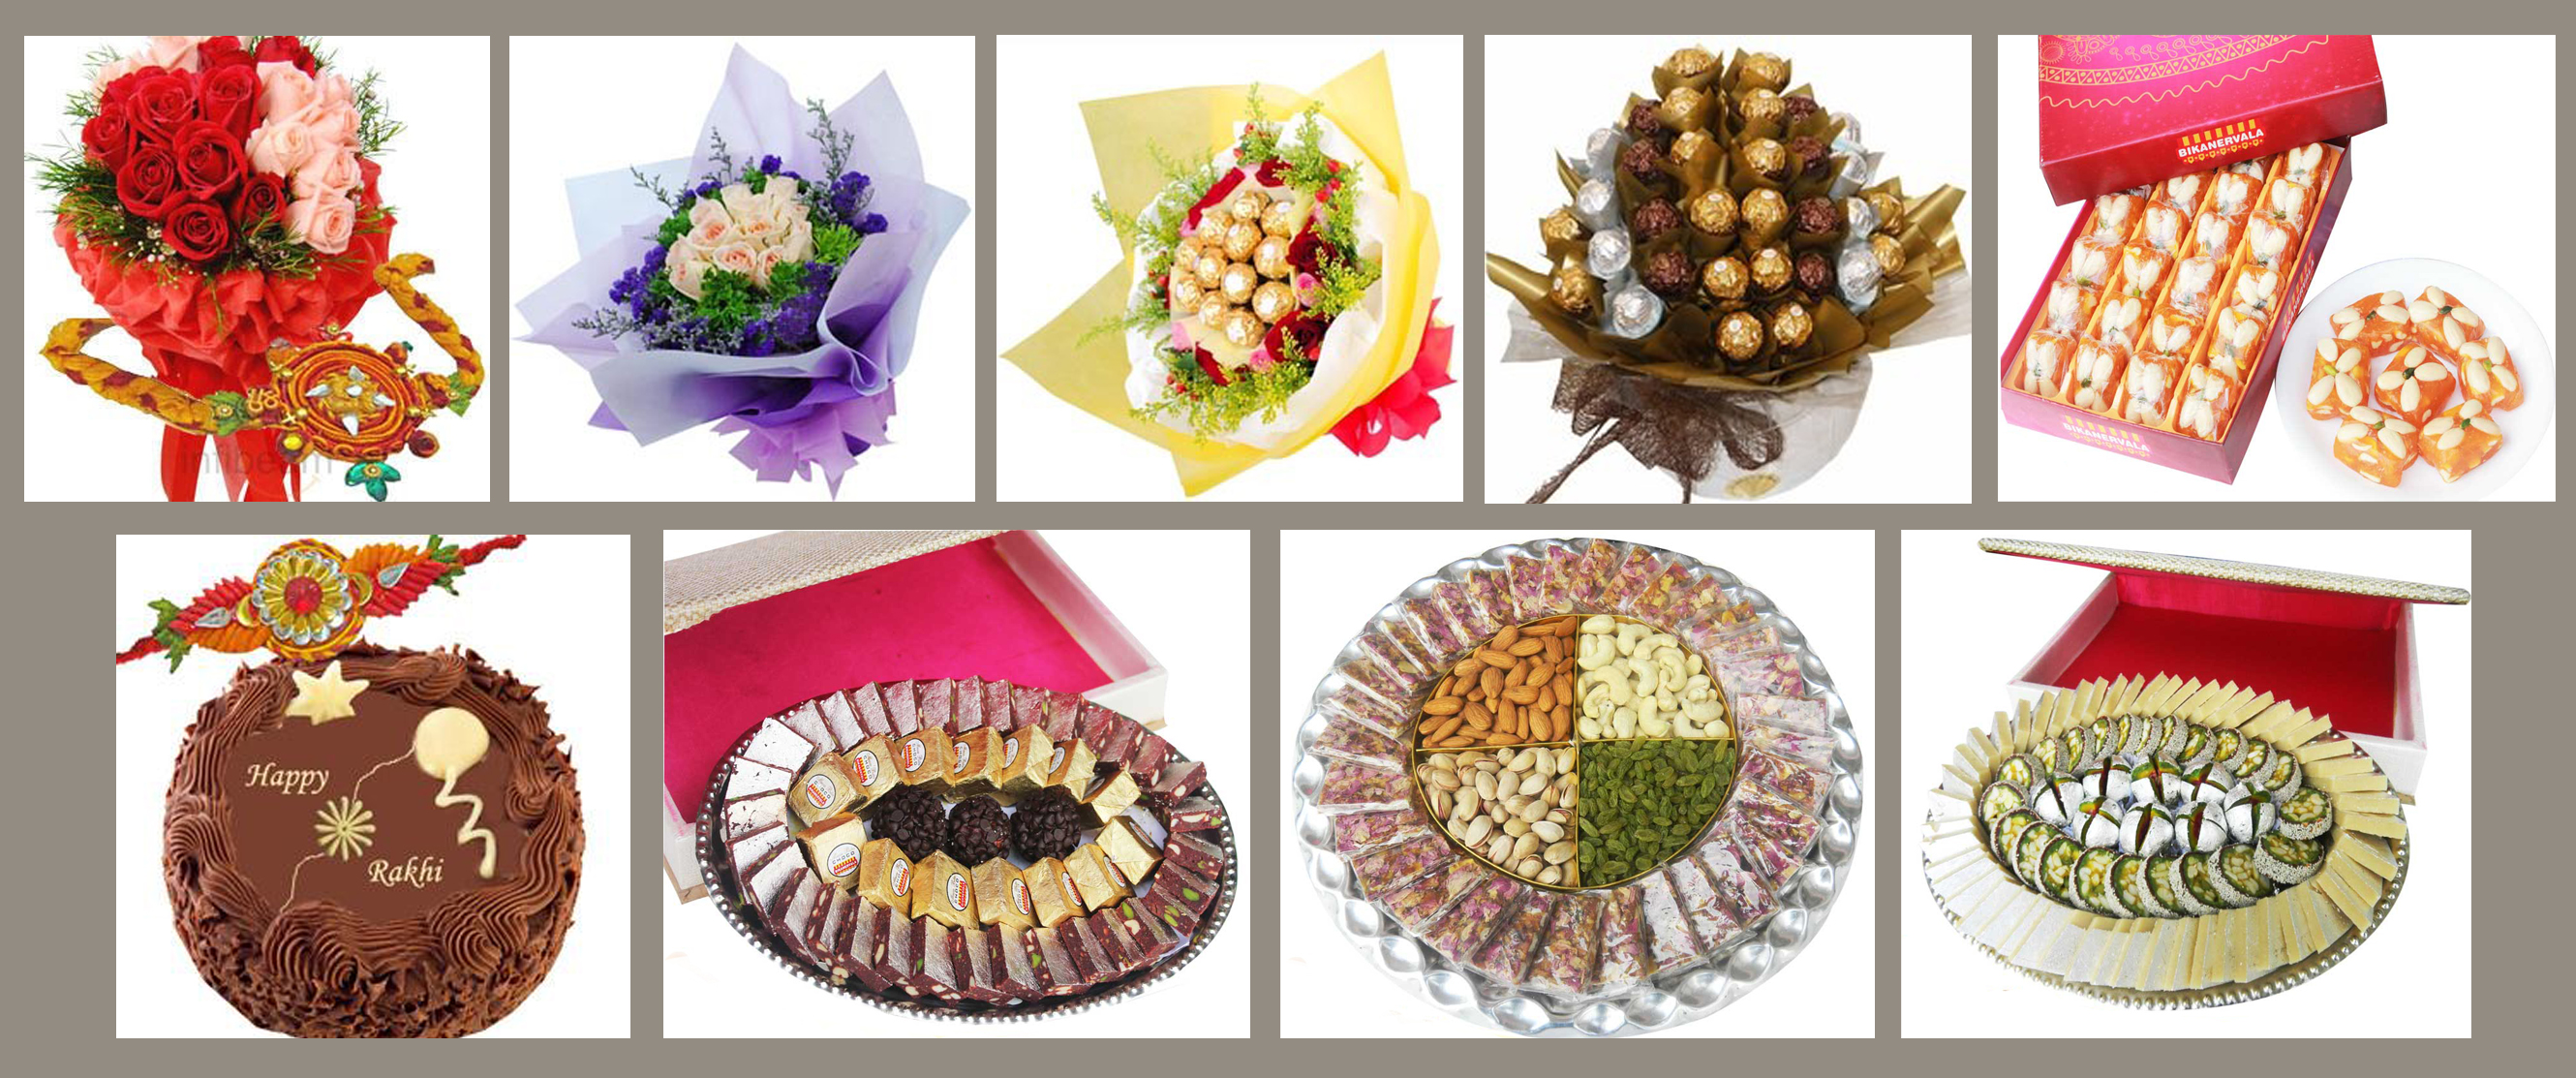 Raksha Bandhan Gifts Ideas For Sister and Brother